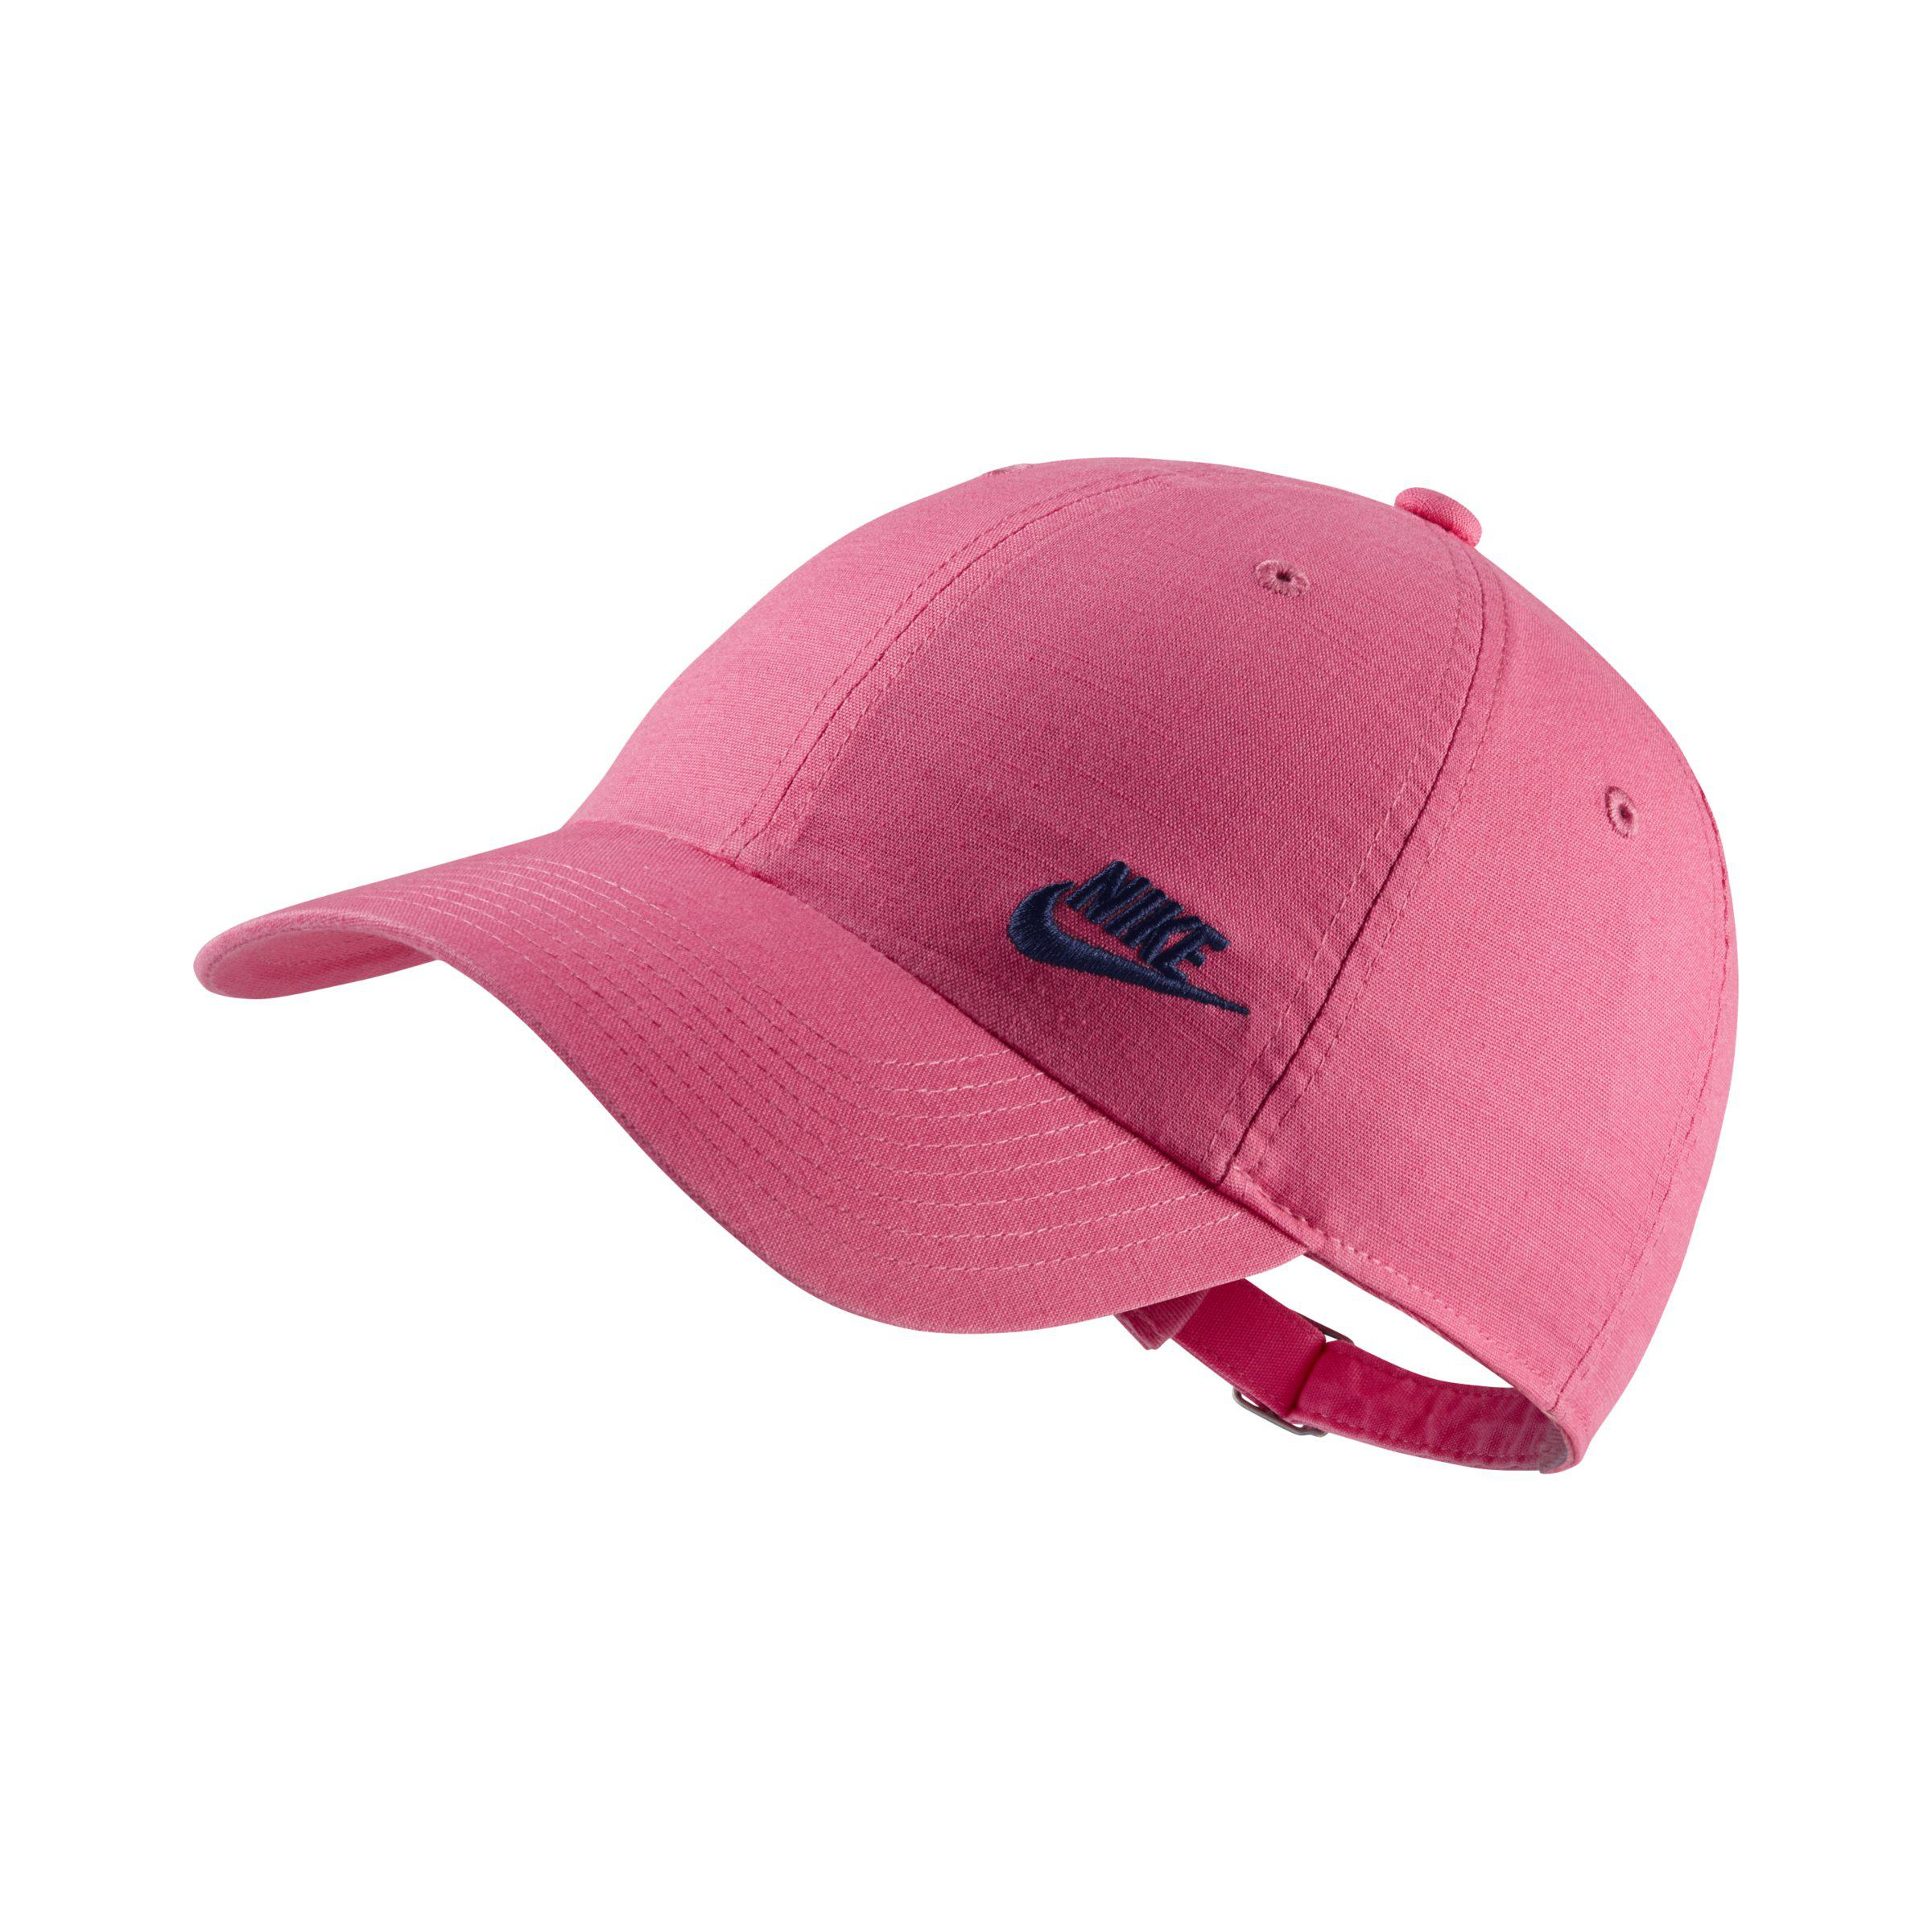 Nike Sportswear Heritage 86 Futura Adjustable Hat in Pink - Lyst a94d161c92c